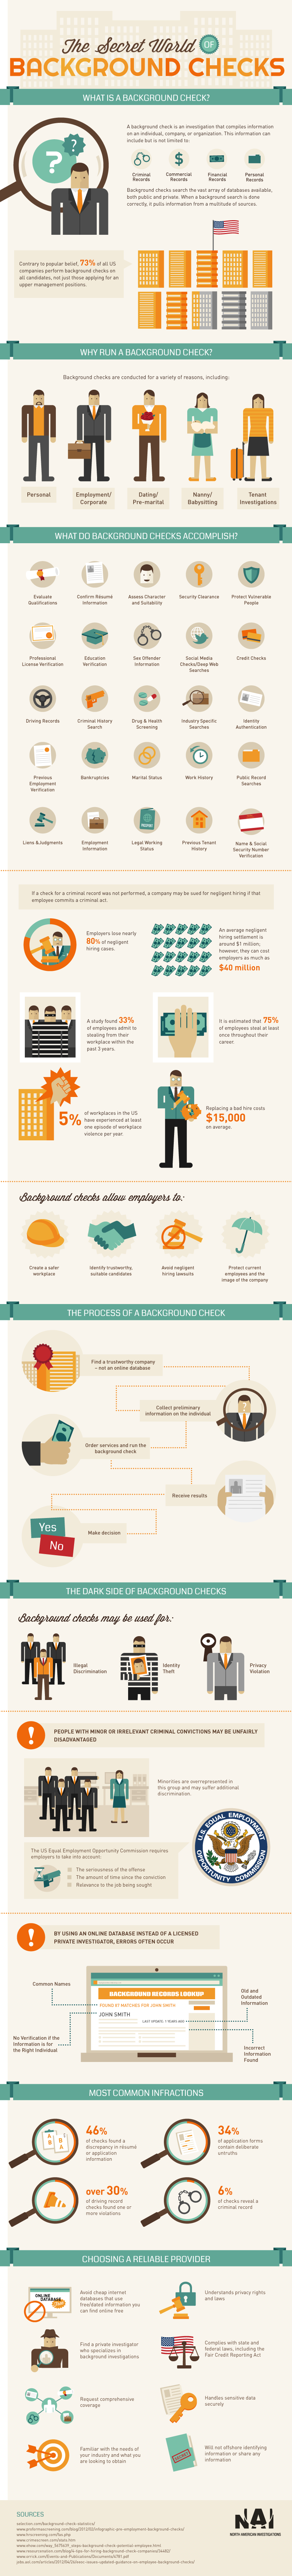 Background Checks 101-Infographic